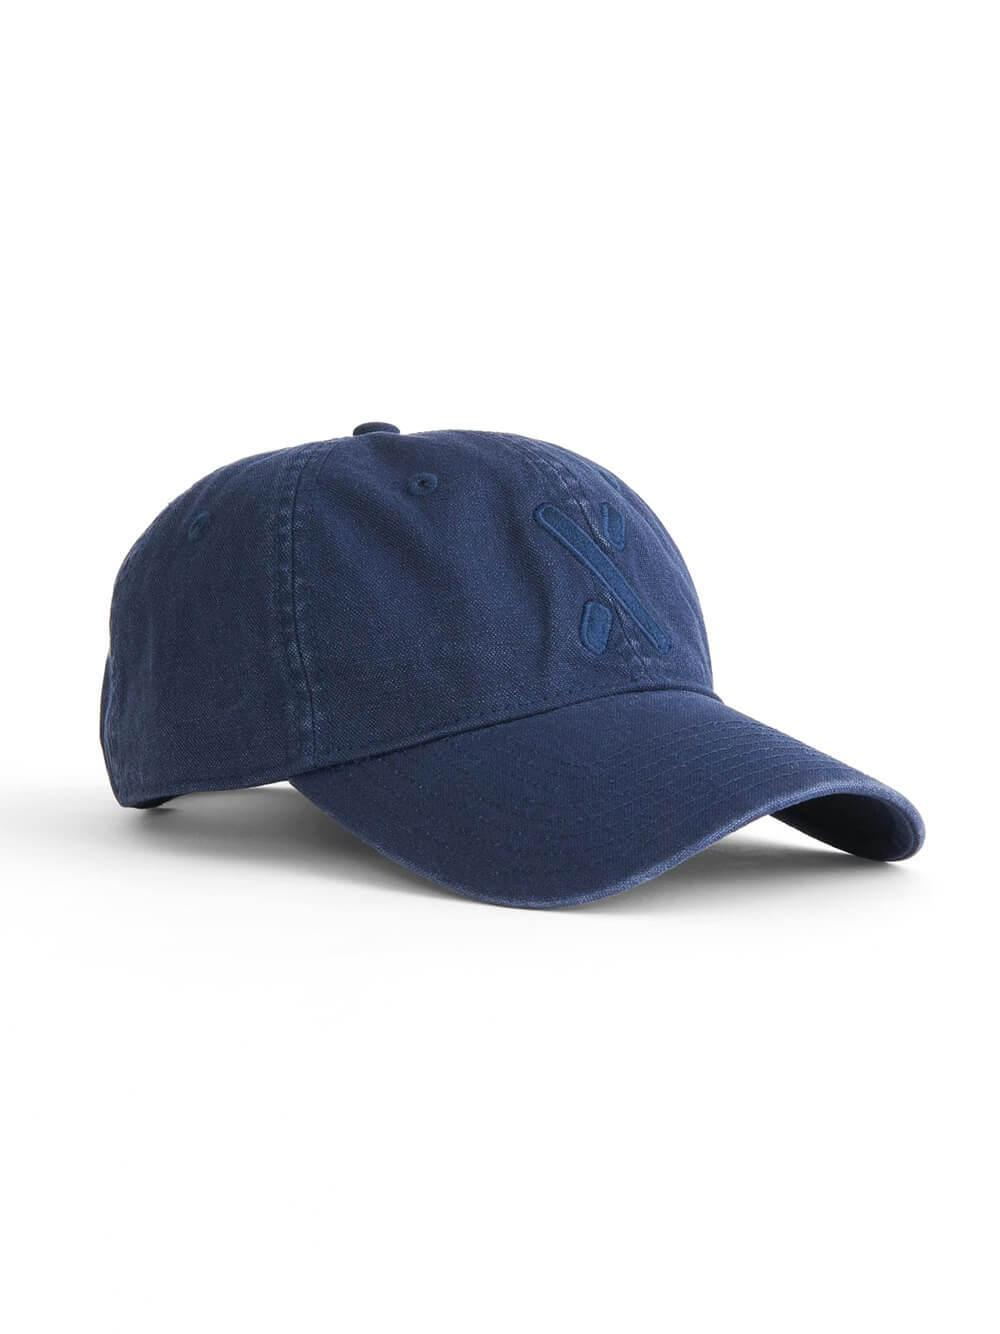 X Canvas Field Cap Item # C00-MA002-1917